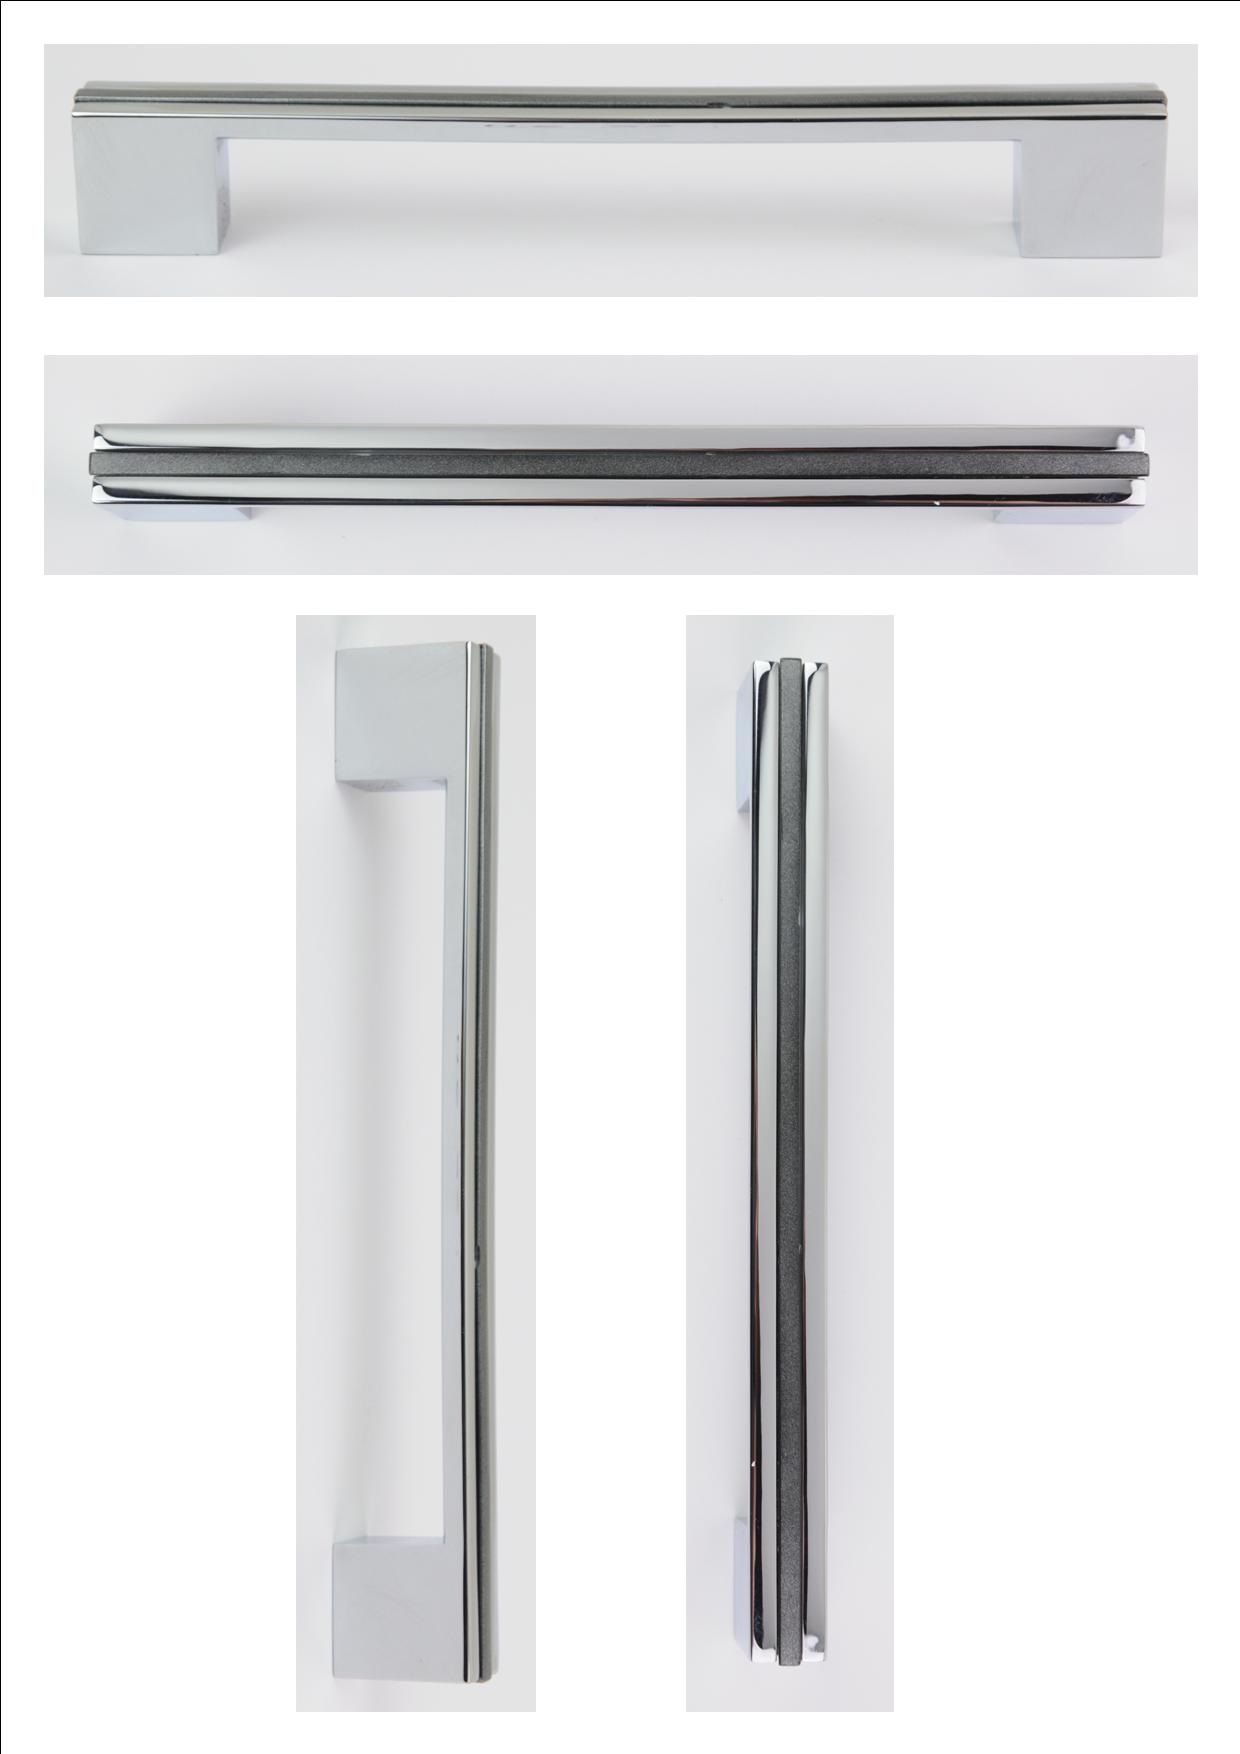 POLISHED CHROME INSERT HANDLE 200MM (160/192MM CENTRES) -  OLD CODE HS22